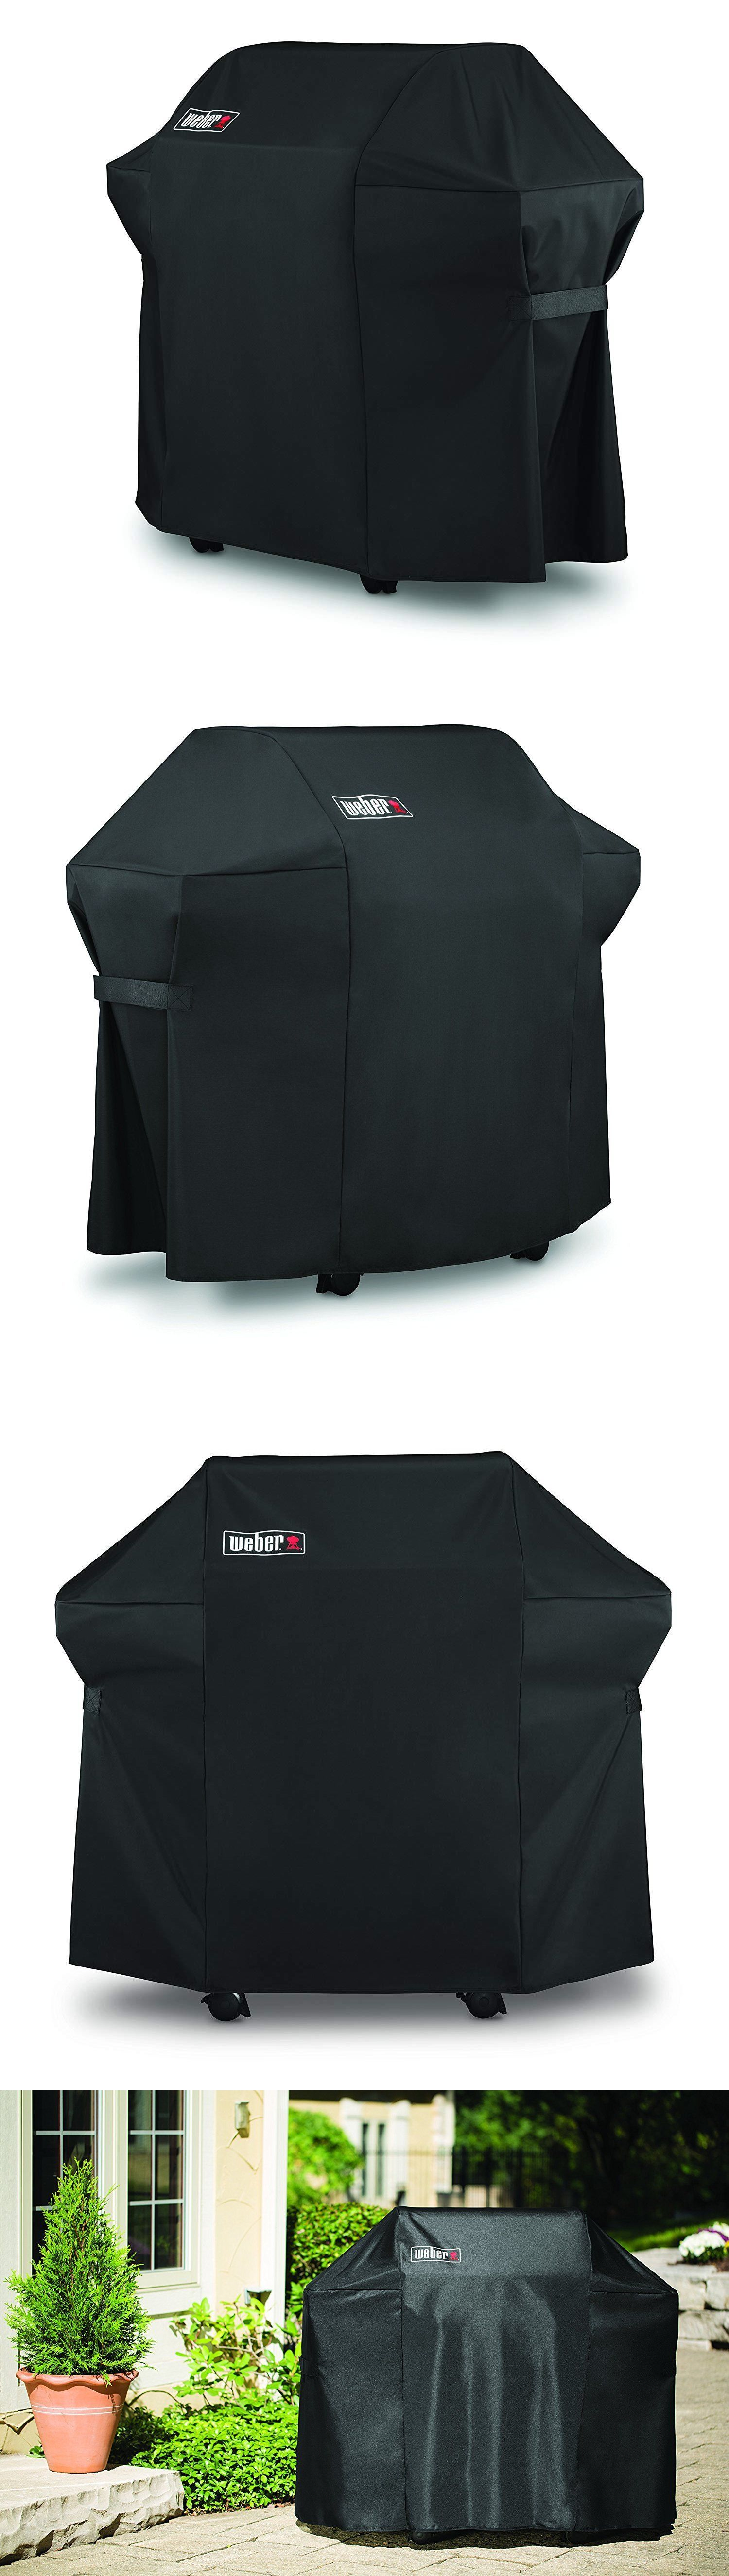 Barbecue And Grill Covers 79686 Weber 7106 Grill Cover Black Storage Bag For Spirit 220 And 300 Series Gas Grill Buy It Now On With Images Bag Storage Grill Cover Bags